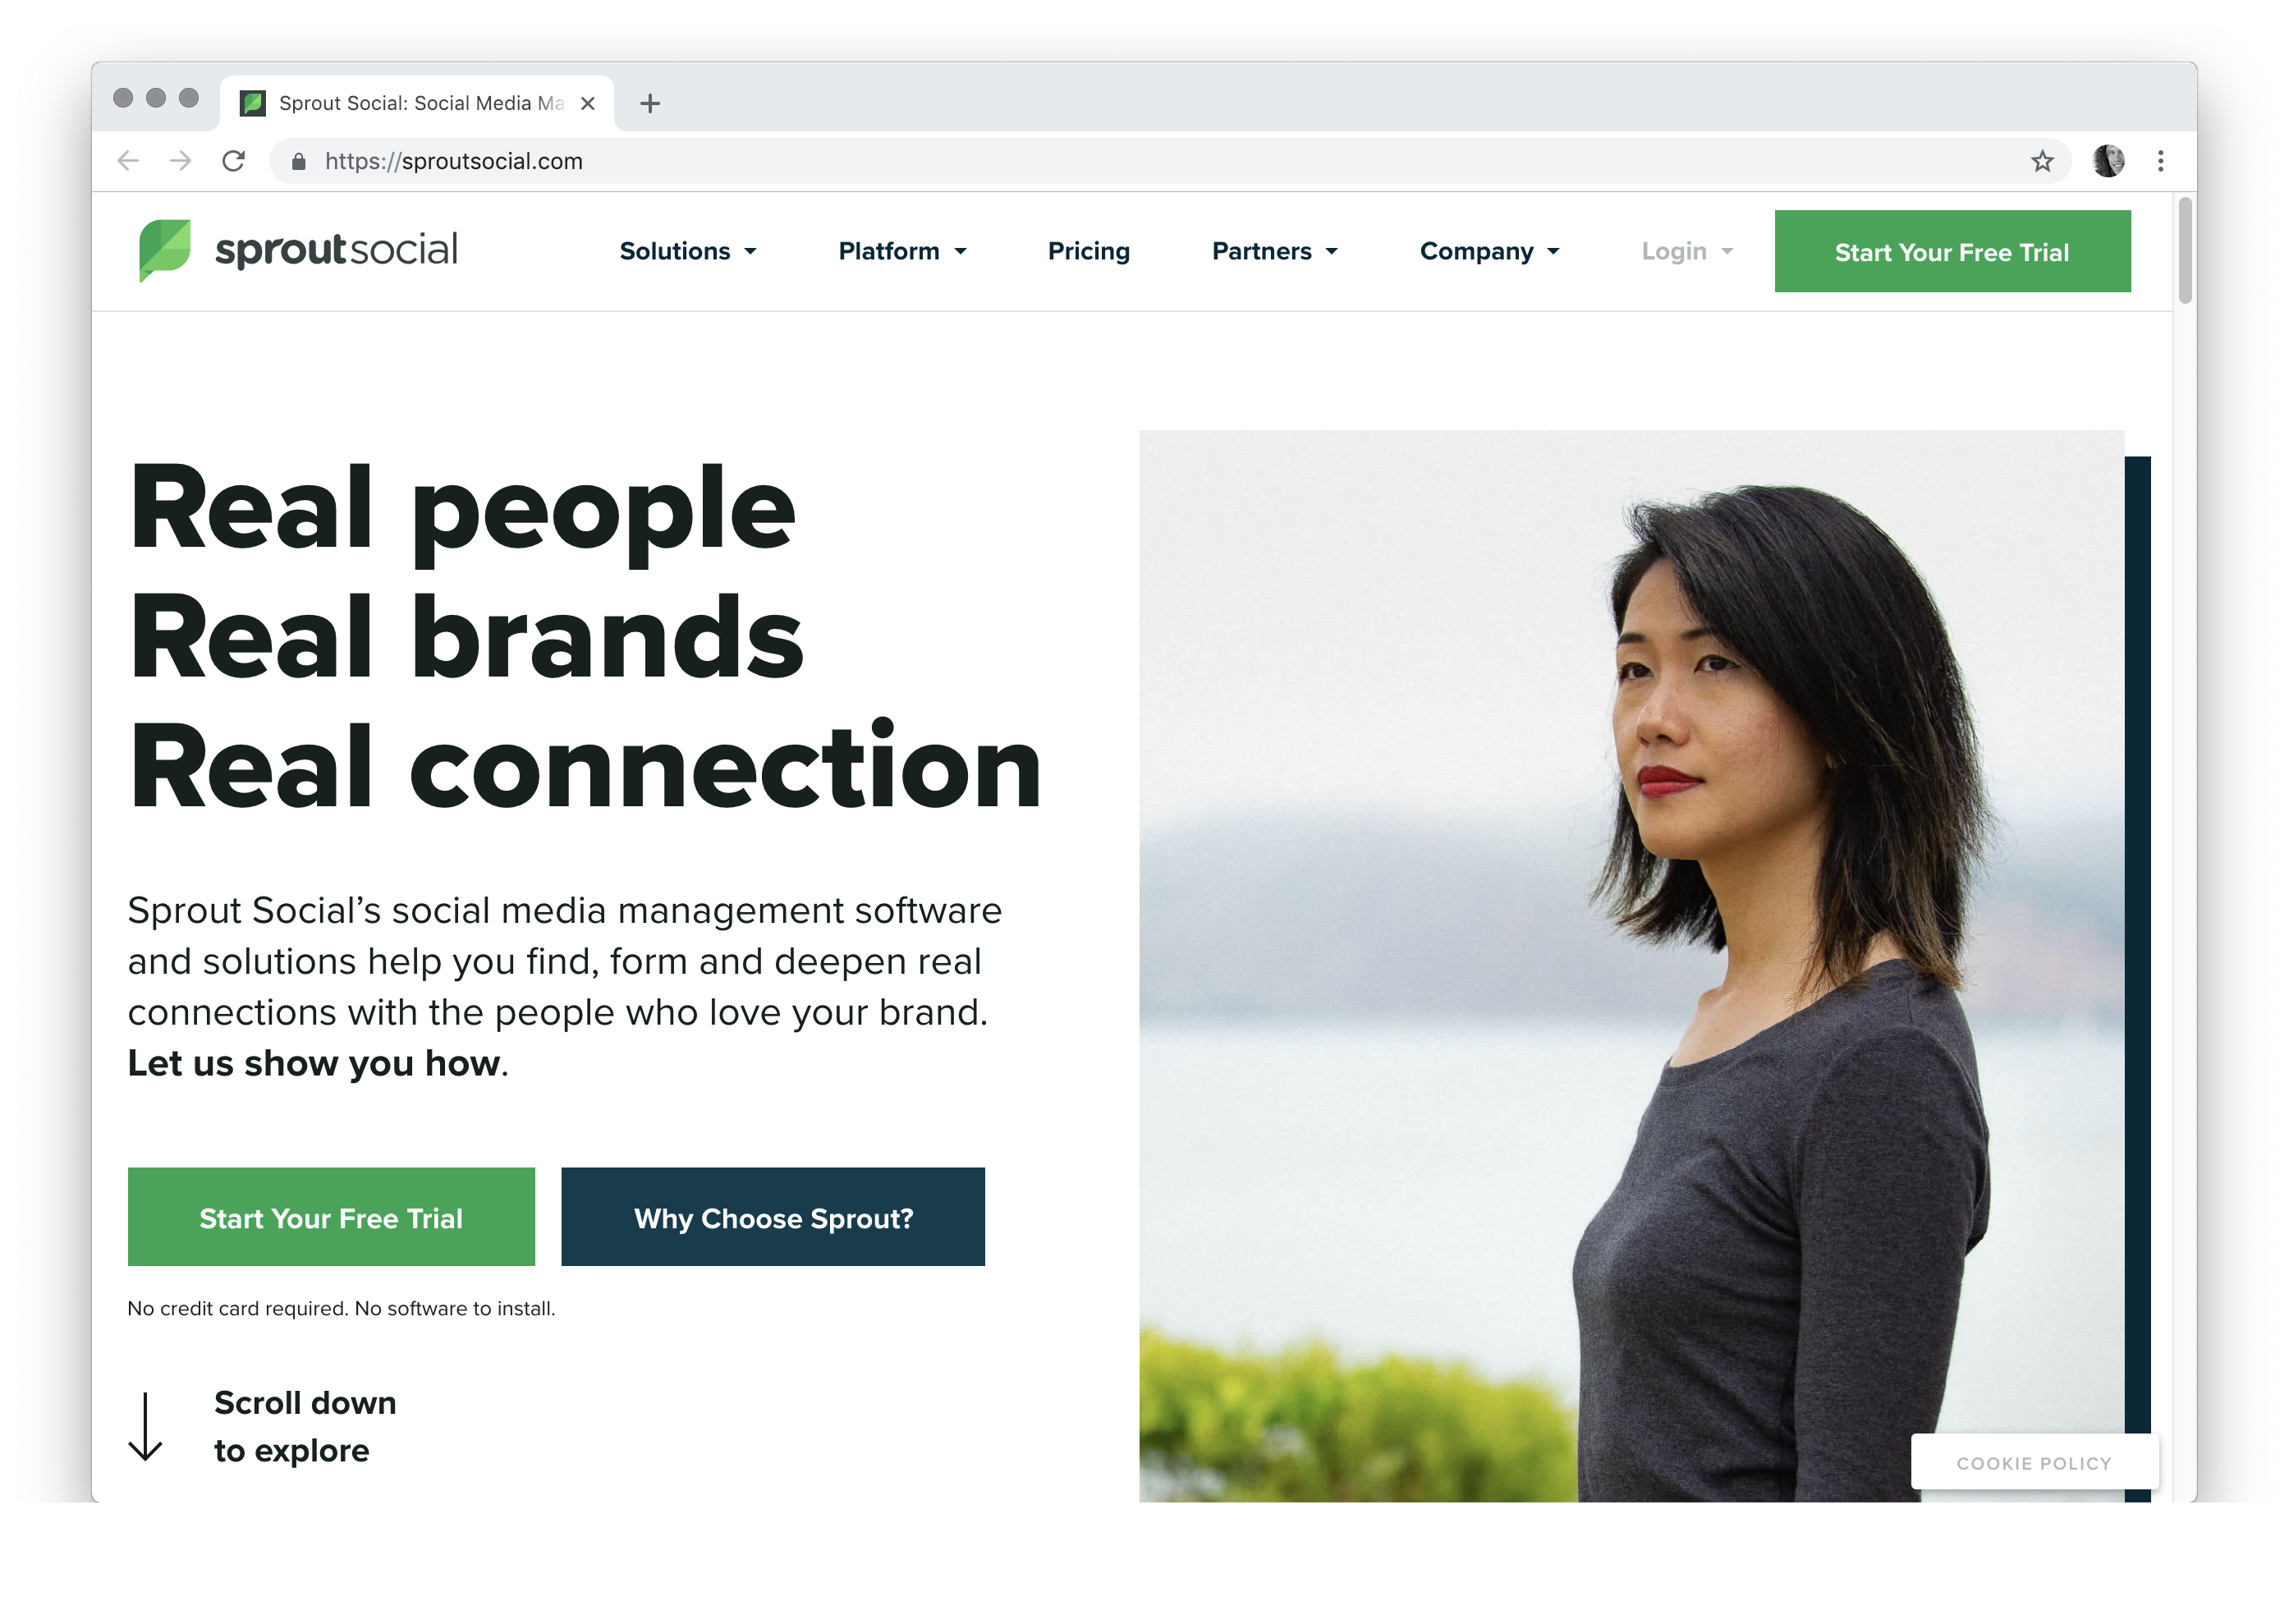 Real people Real brands Real connection Sprout Social's social media management software and solutions help you find, form and deepen real connections with the people who love your brand.